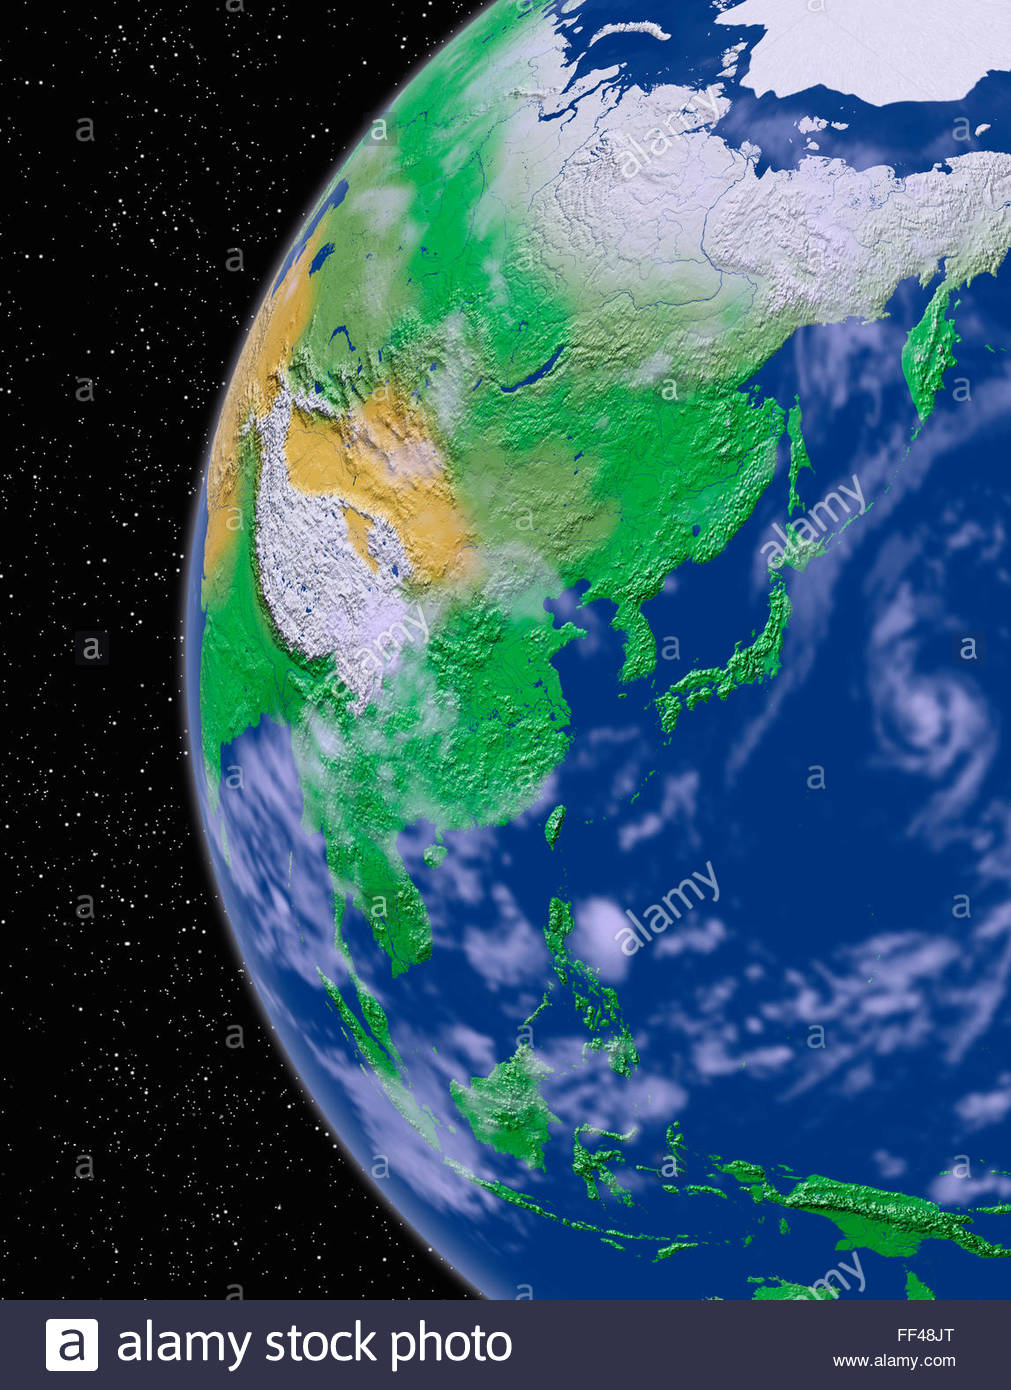 Simulated satellite view of part of the earth asia from space world simulated satellite view of part of the earth asia from space world map space planet globe terrain relief sphere continent maps gumiabroncs Image collections